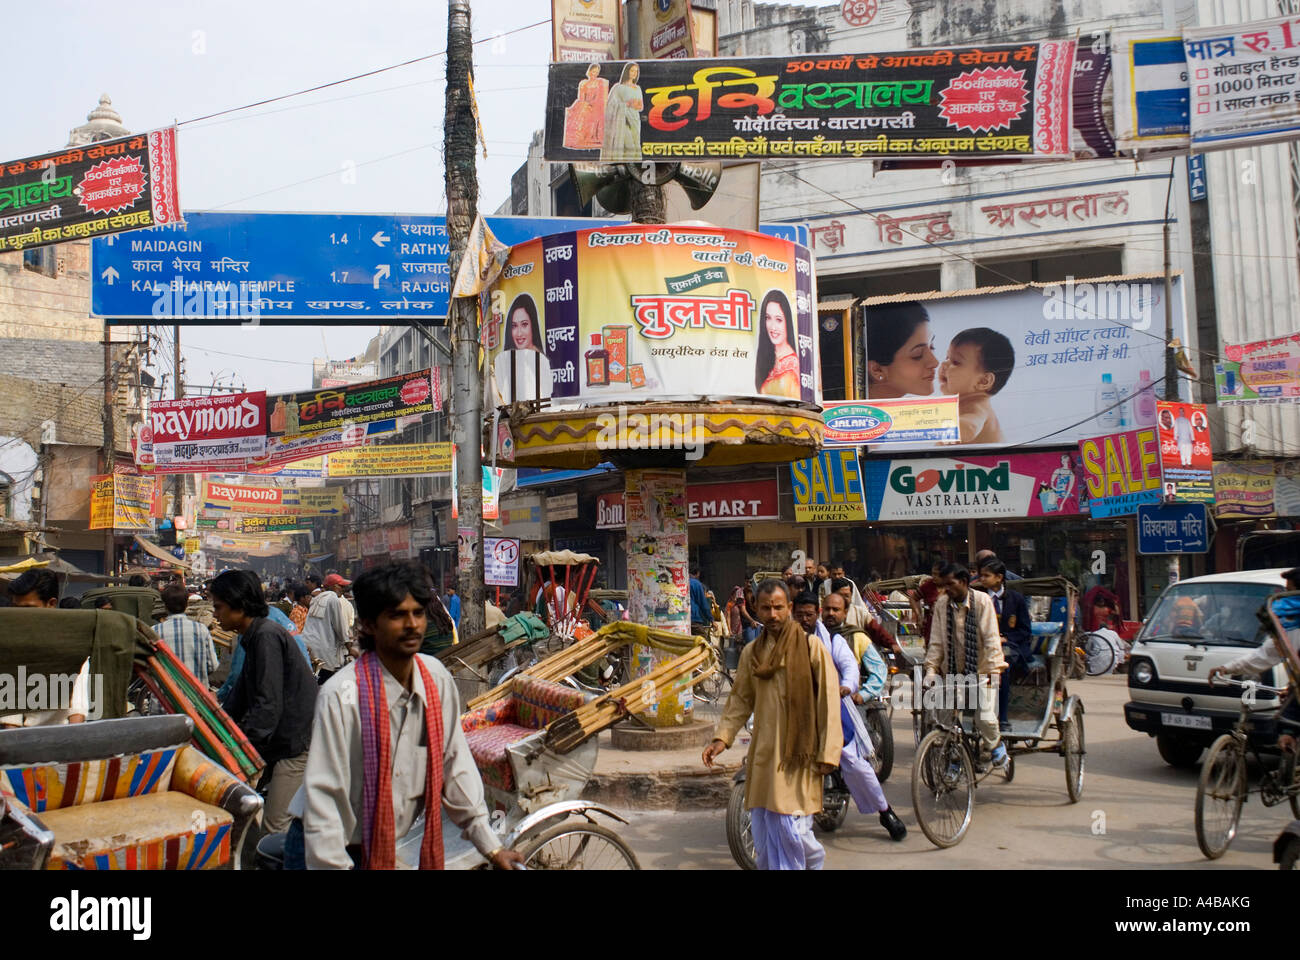 Stock image of crowded street with rickshaws people cars and billboards in Varanasi India - Stock Image